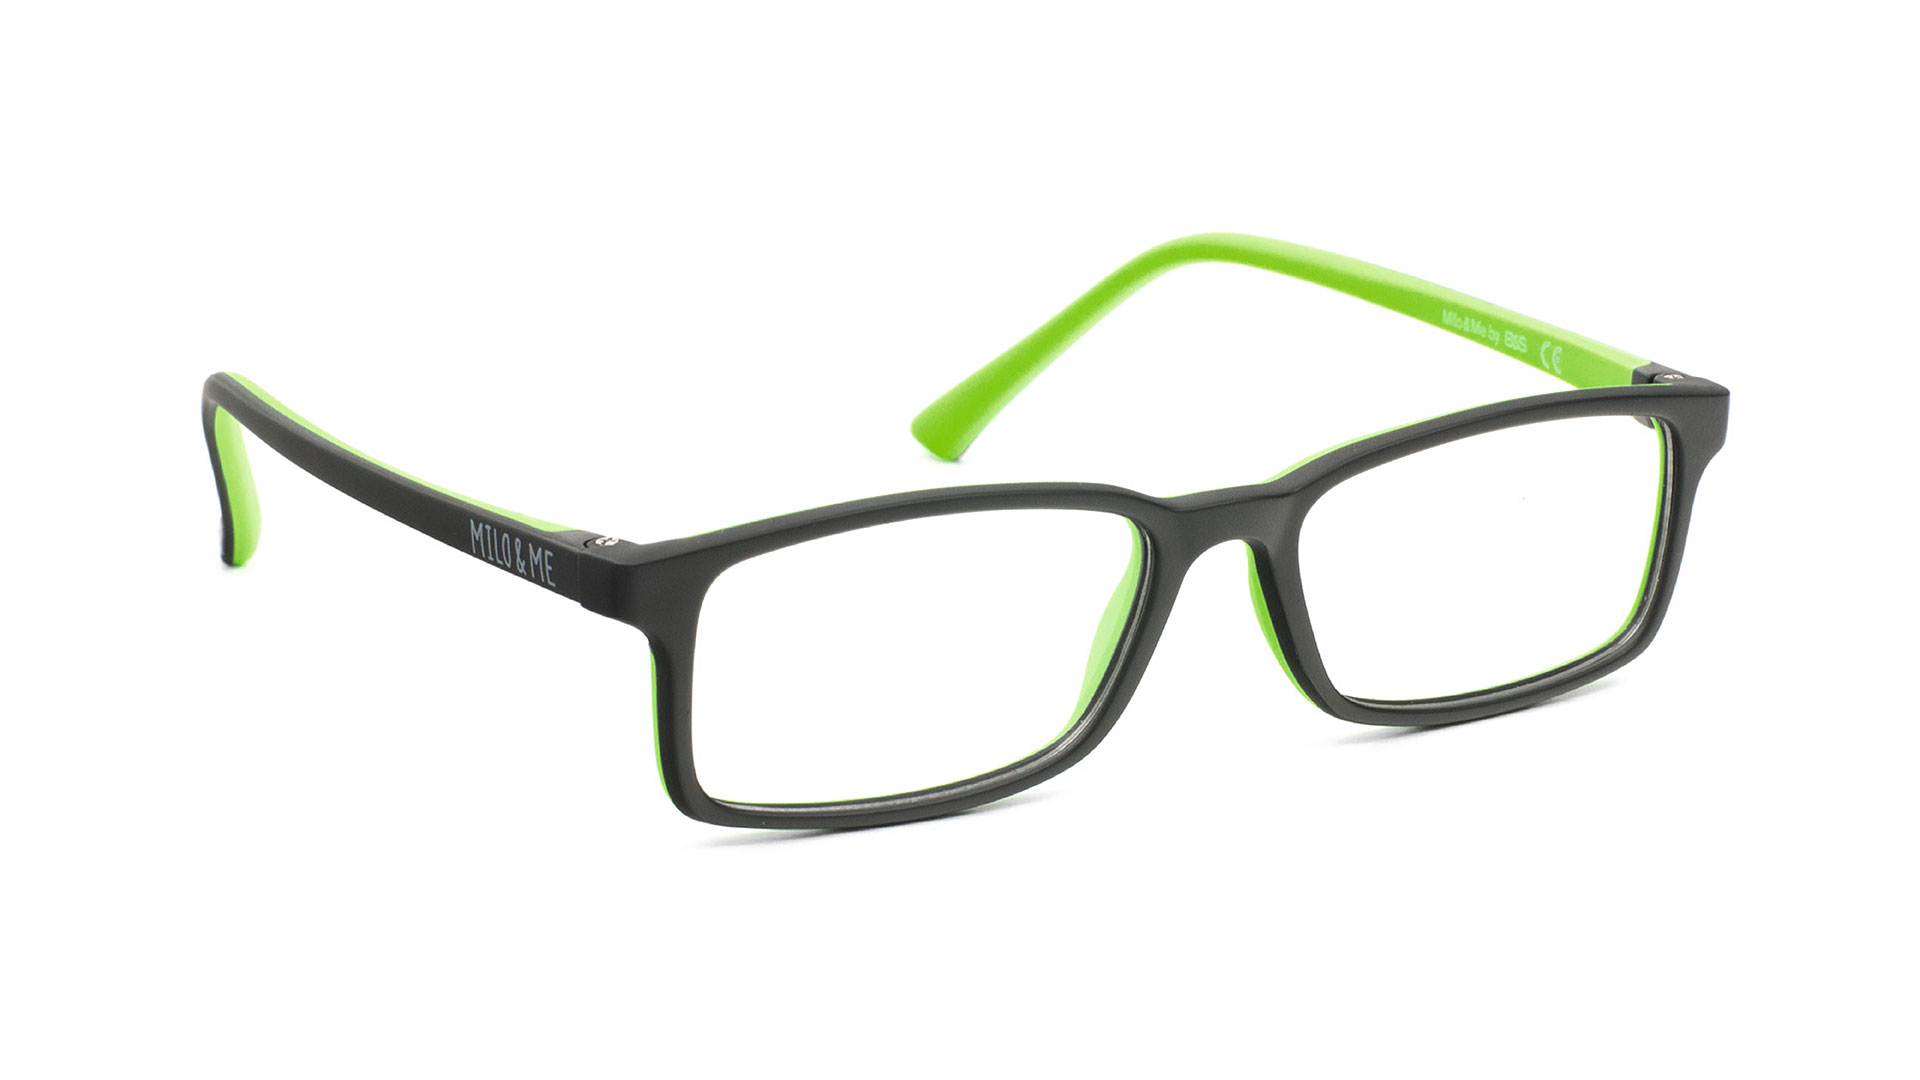 BlackApple Green H85021-12 - Milo & Me Eyewear - Optimum RX Lens Specialists